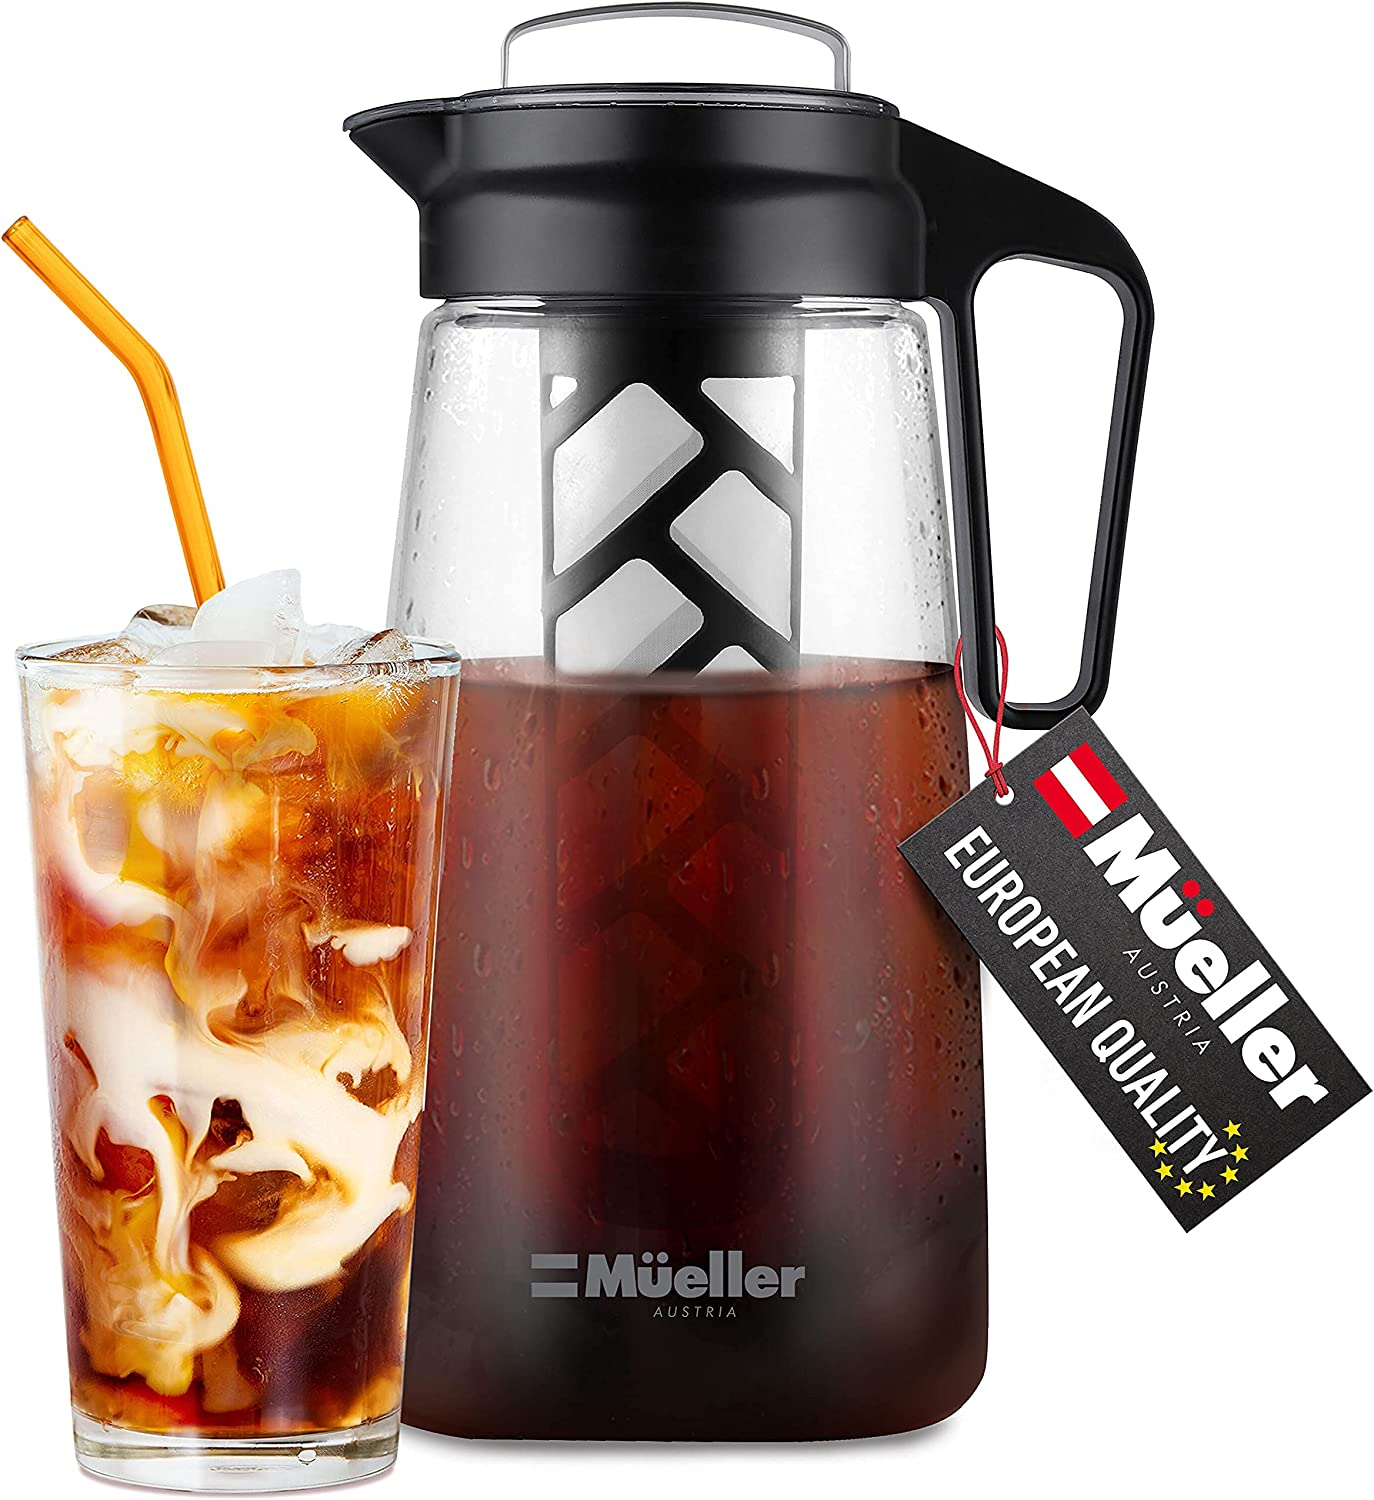 Mueller Cold Brew Maker for Coffee and Tea, 2 Quart Heavy-Duty Tritan Pitcher with Easy To Clean Reusable Mesh Filter